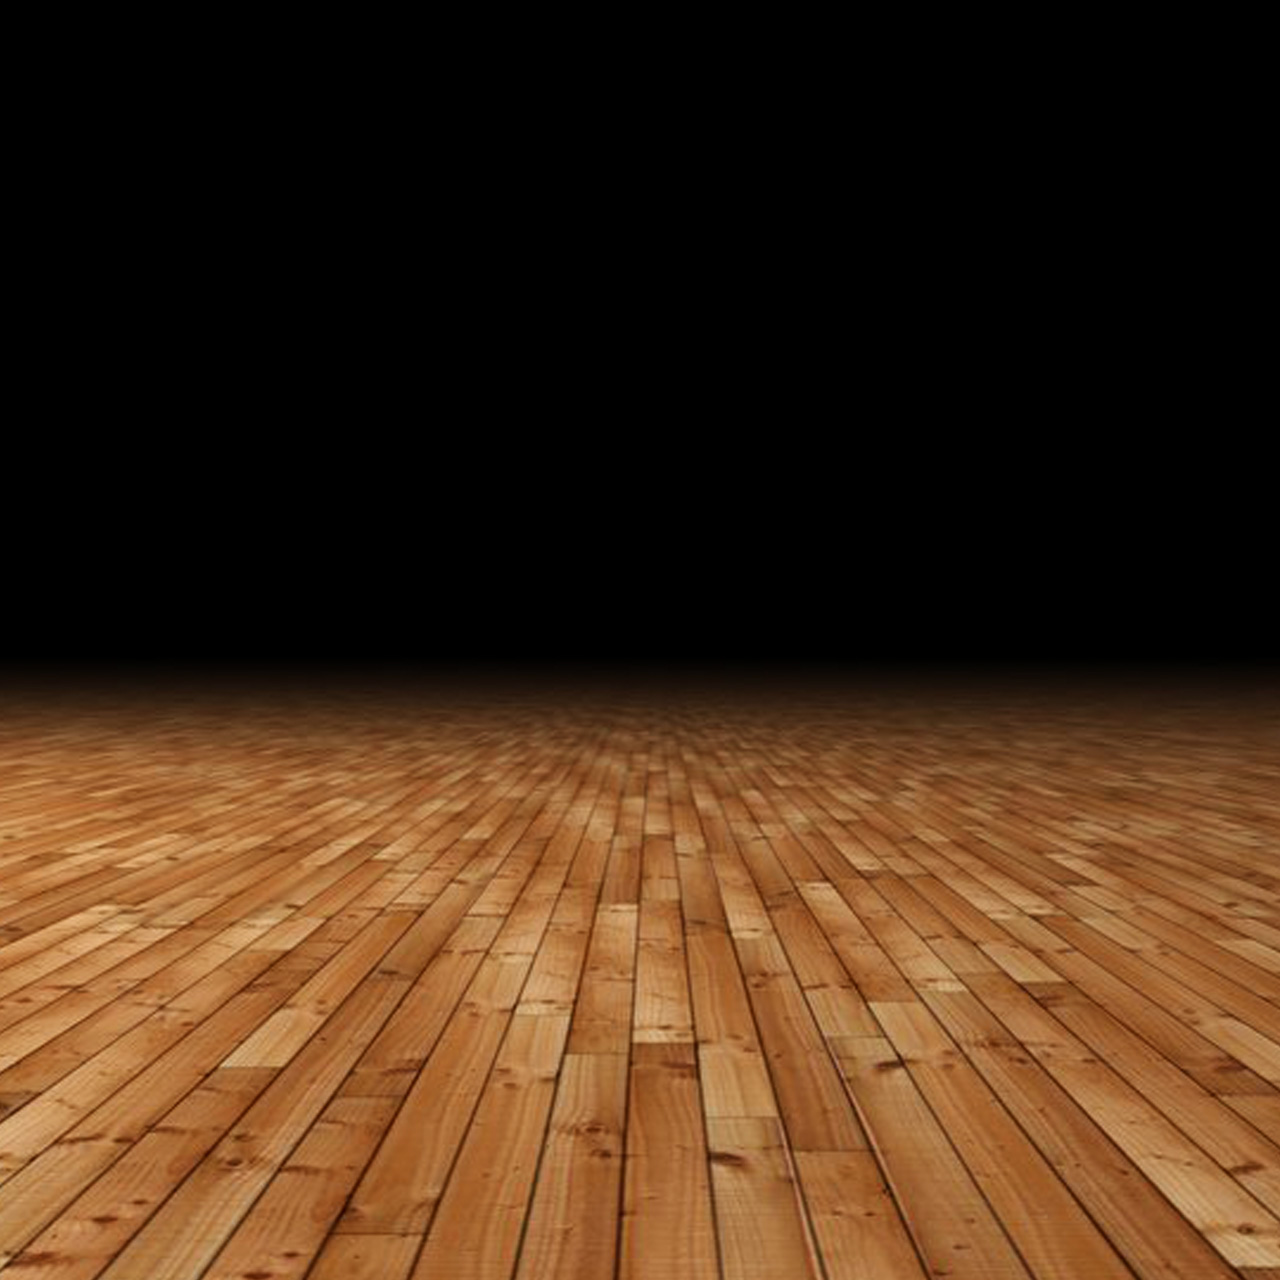 Cool Basketball Wallpapers: 14 Basketball Backgrounds For Photoshop Images